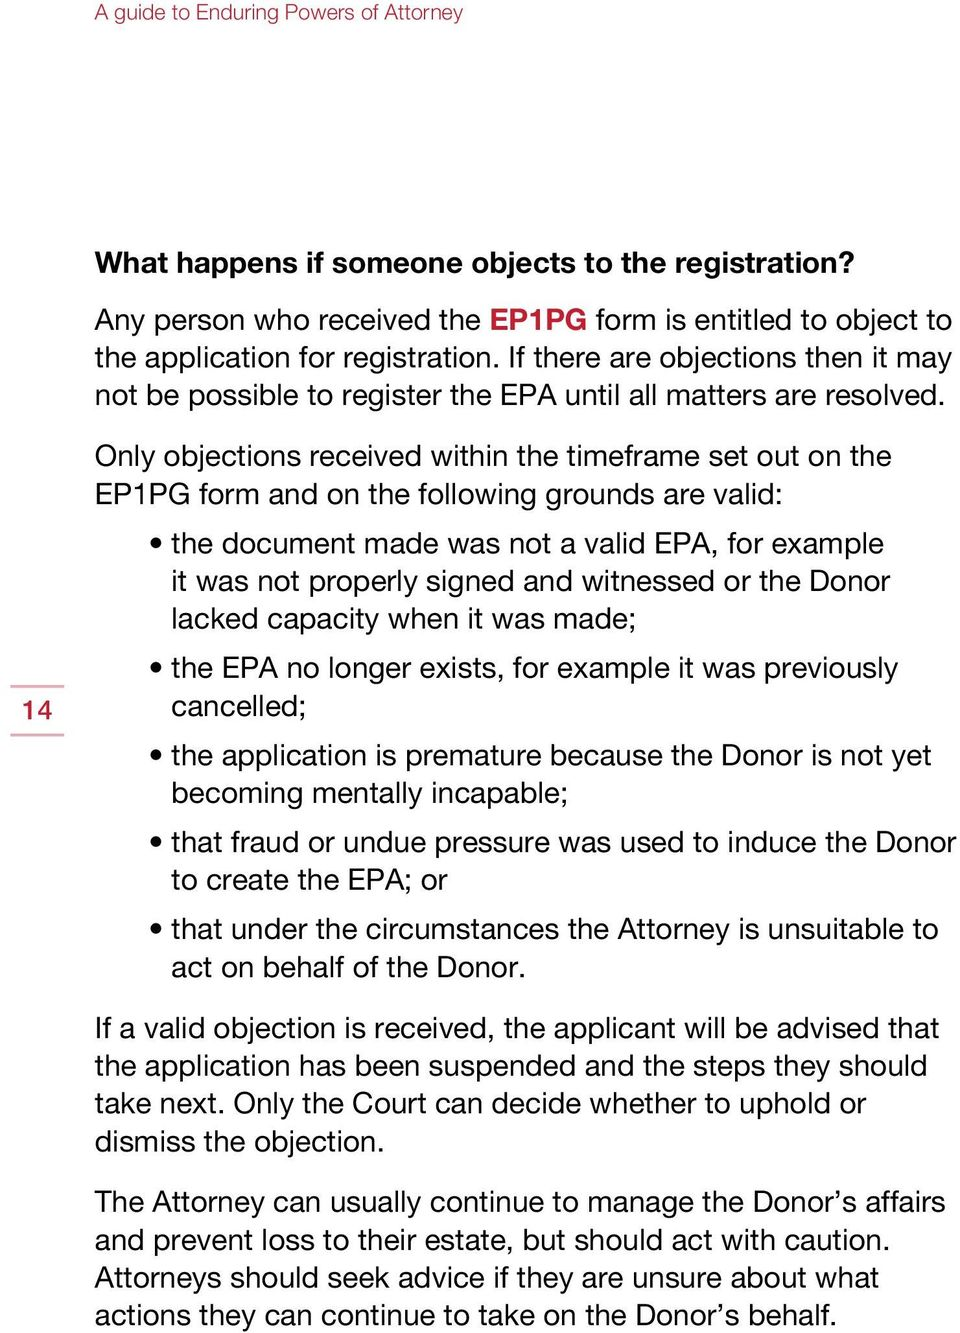 14 Only objections received within the timeframe set out on the EP1PG form and on the following grounds are valid: the document made was not a valid EPA, for example it was not properly signed and